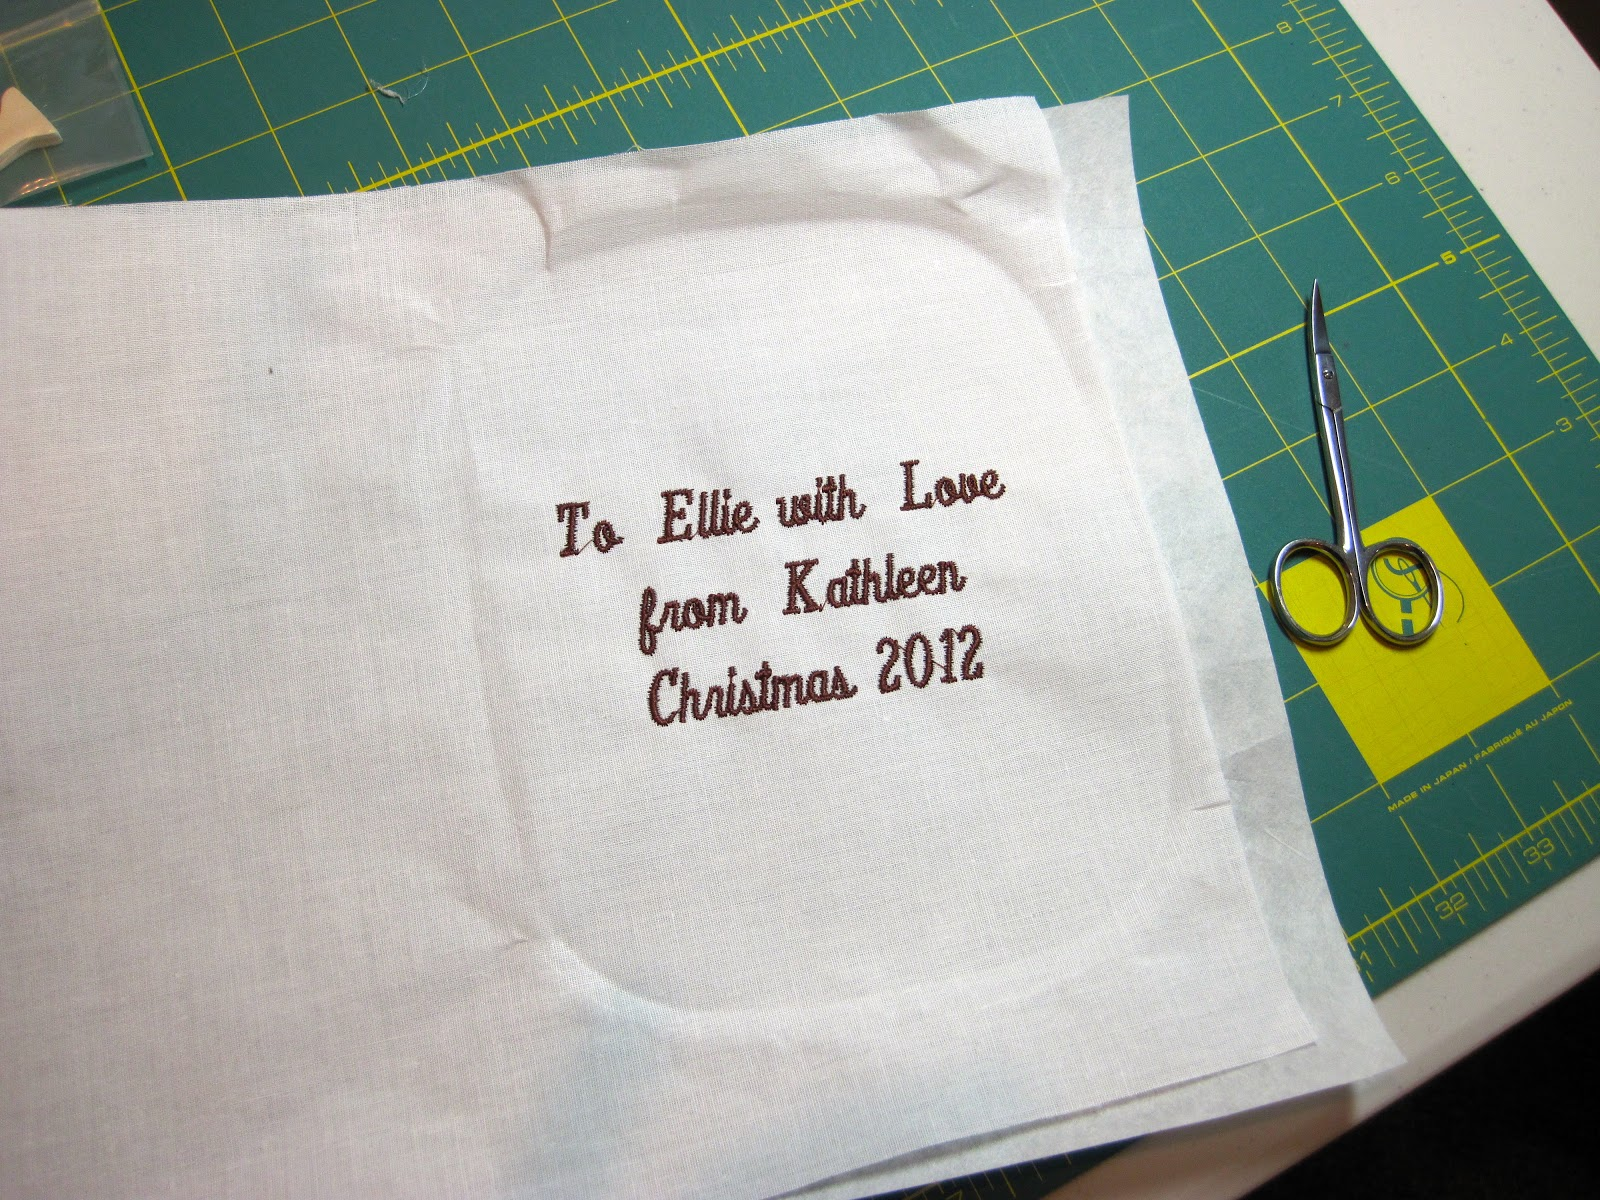 Embroidery Quilt Label Designs : Embroidered Quilt Labels & Shirts - Sylvia s Stitches